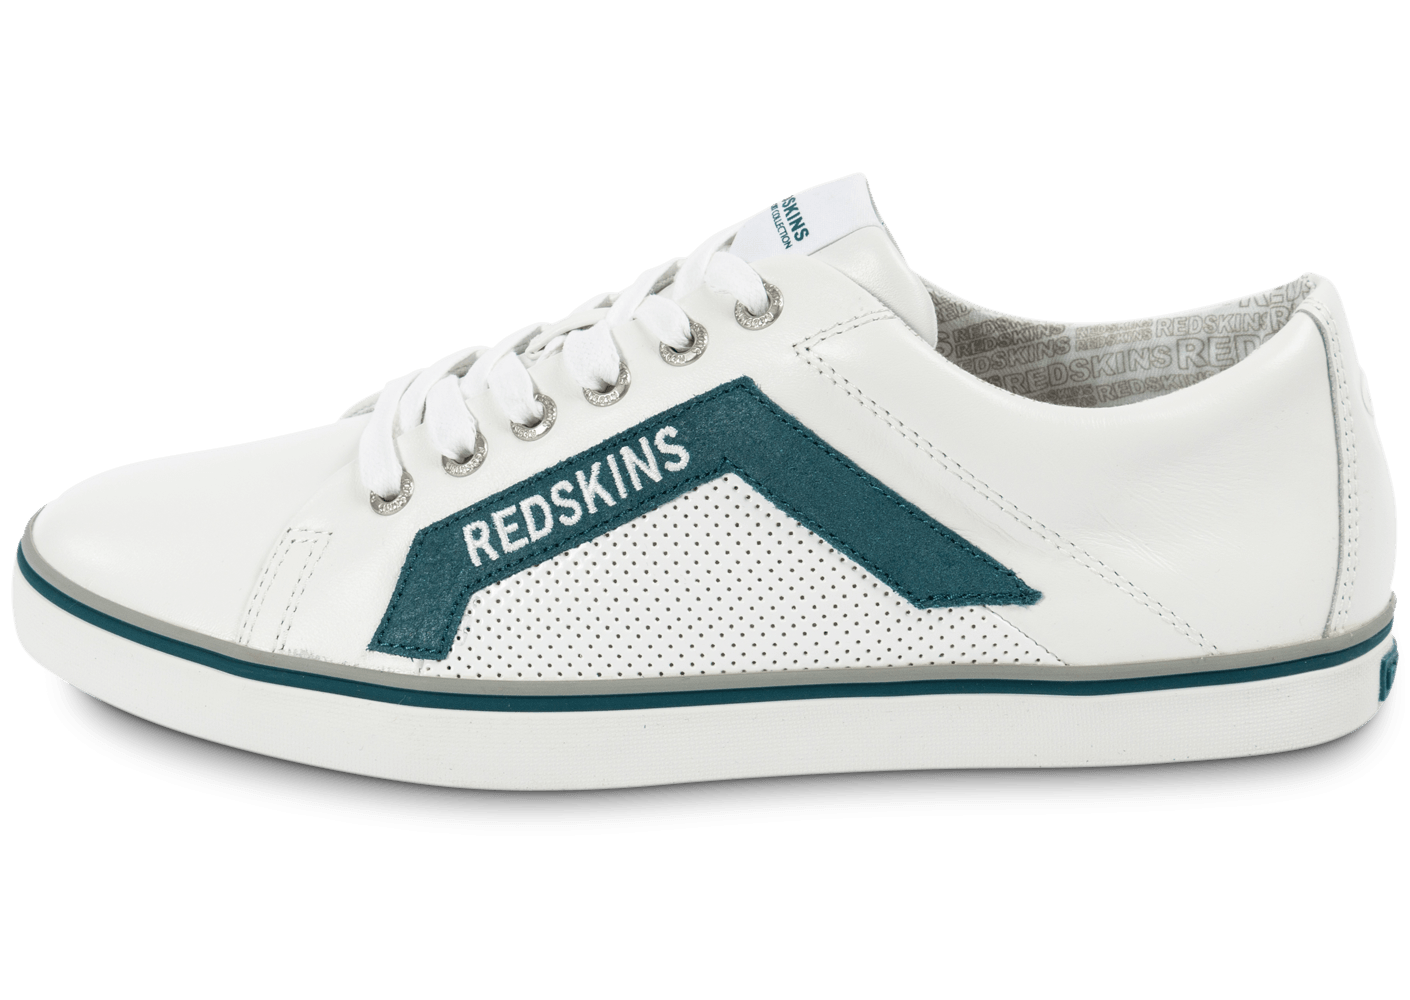 chaussures redskins homme pointure 46